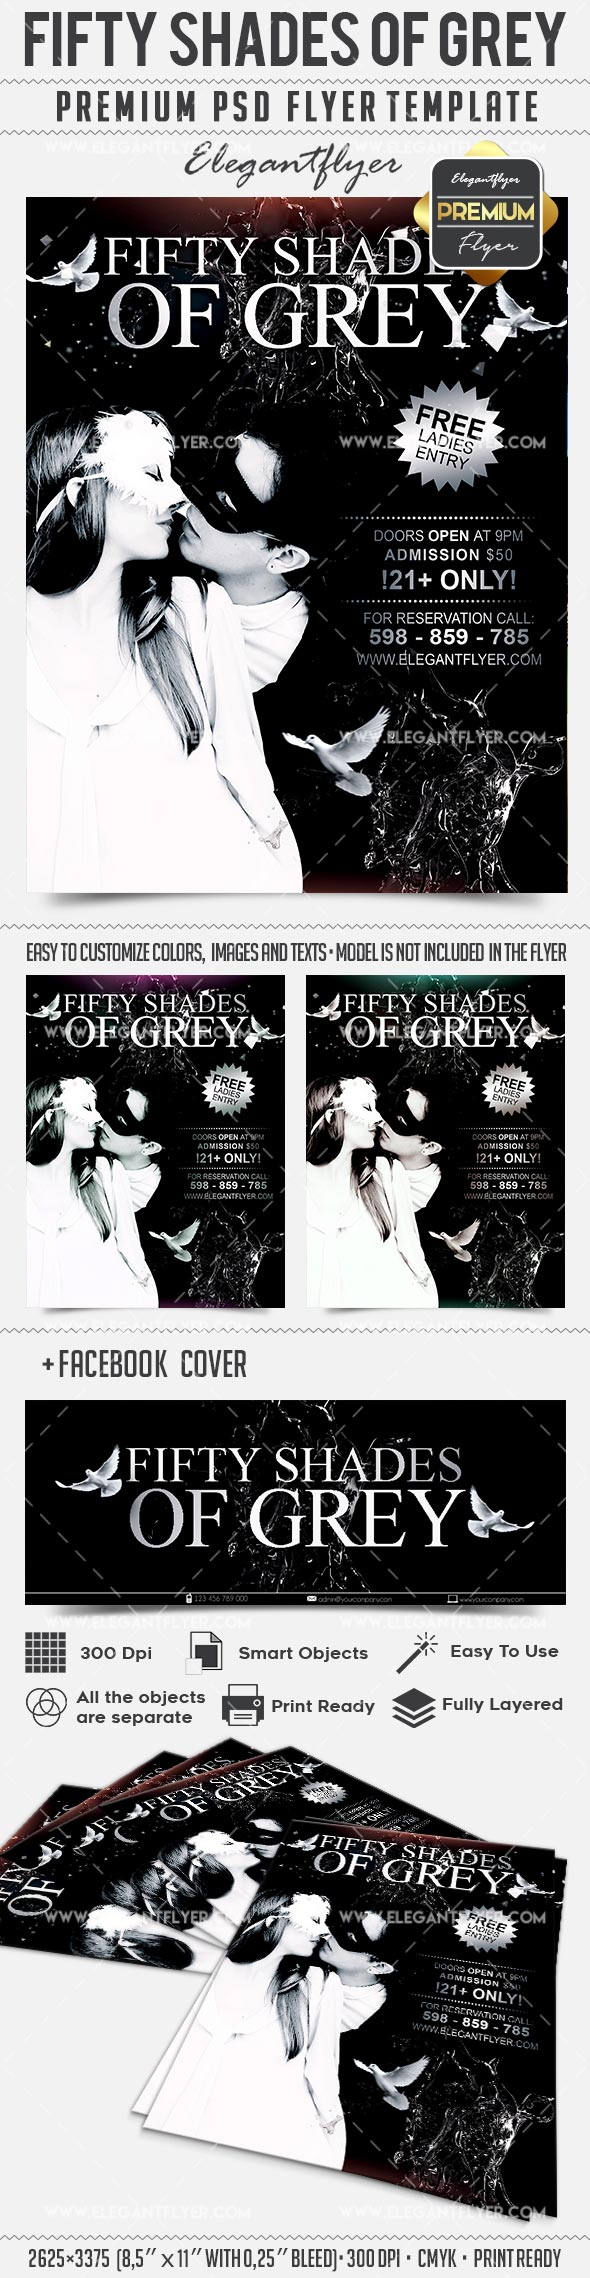 Fifty Shades of Grey – Flyer PSD Template